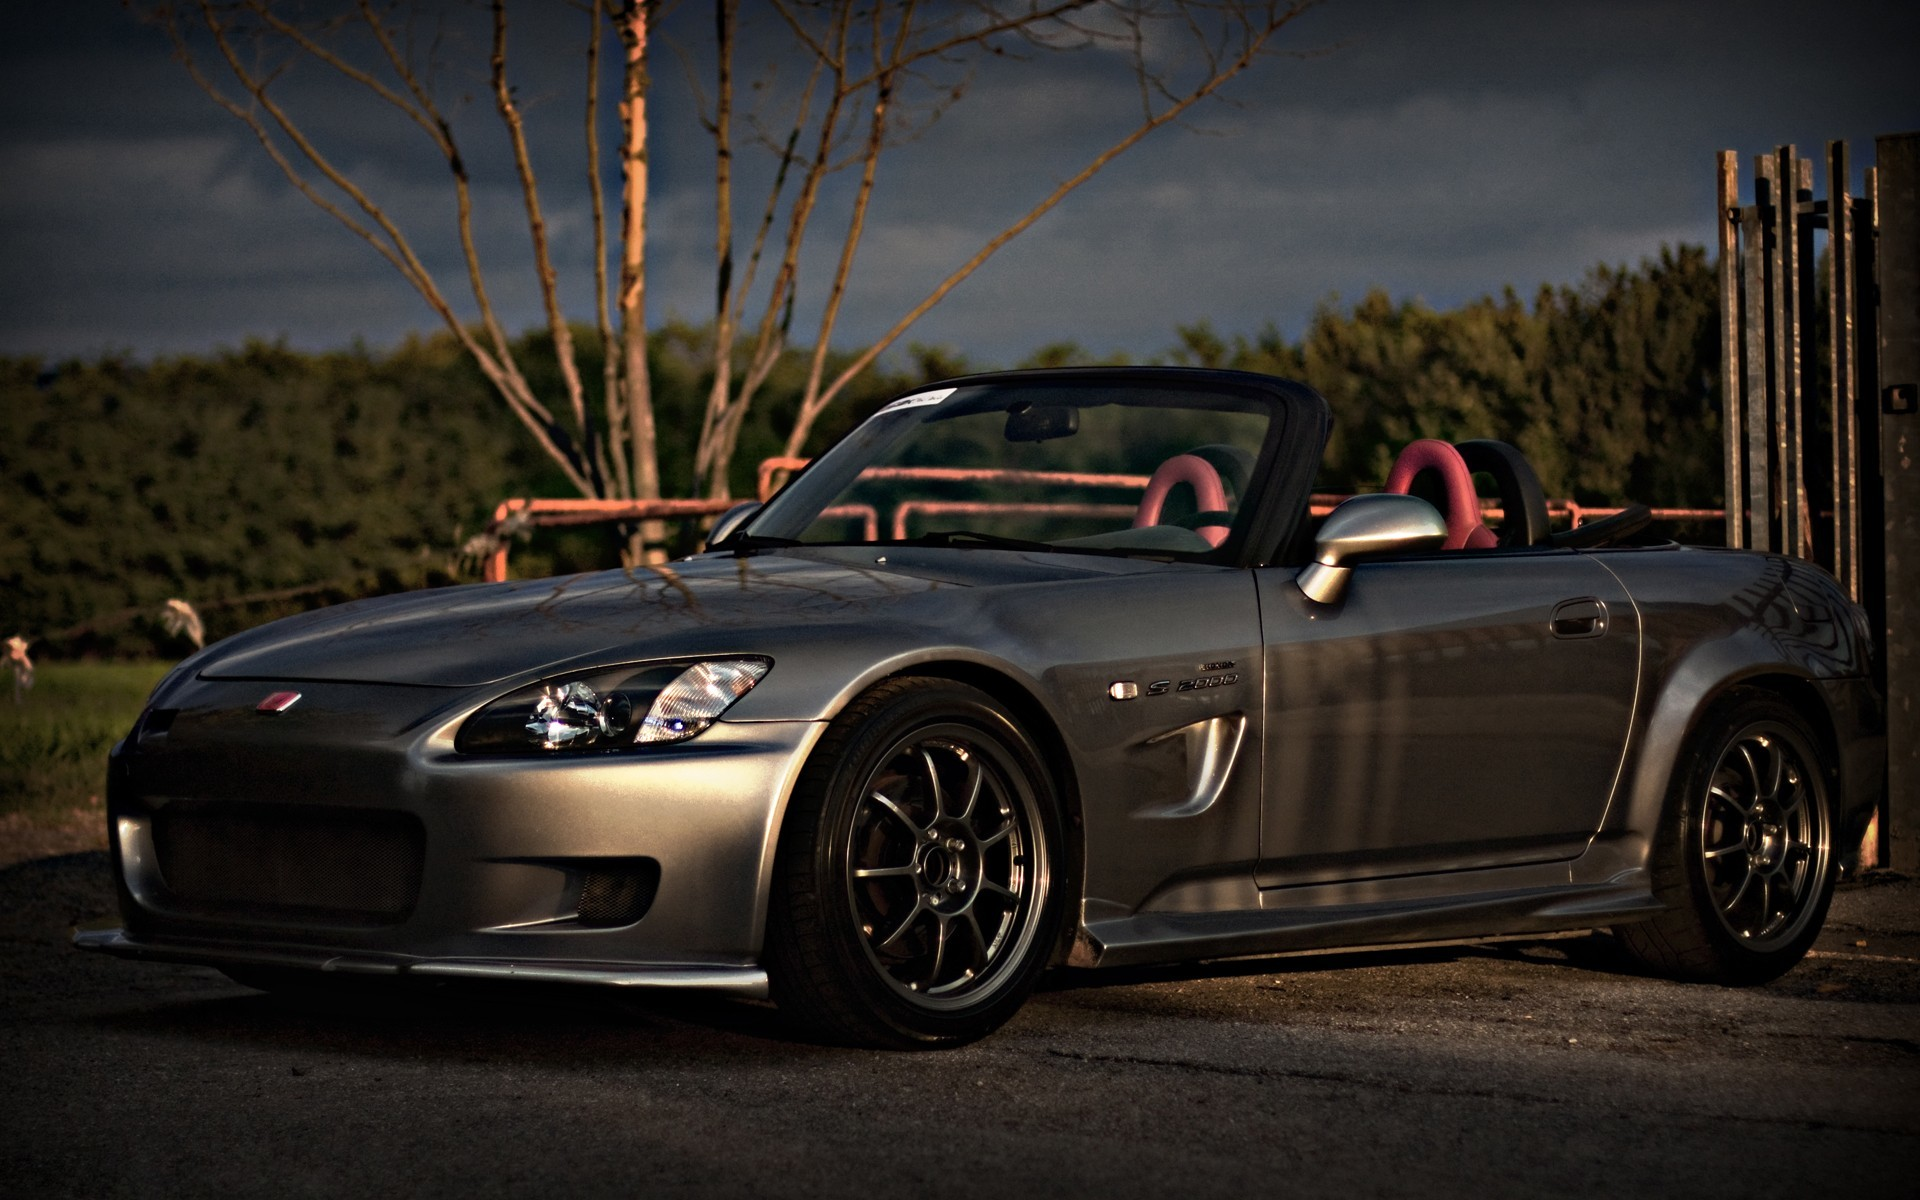 1920x1200 - Honda S2000 Wallpapers 30